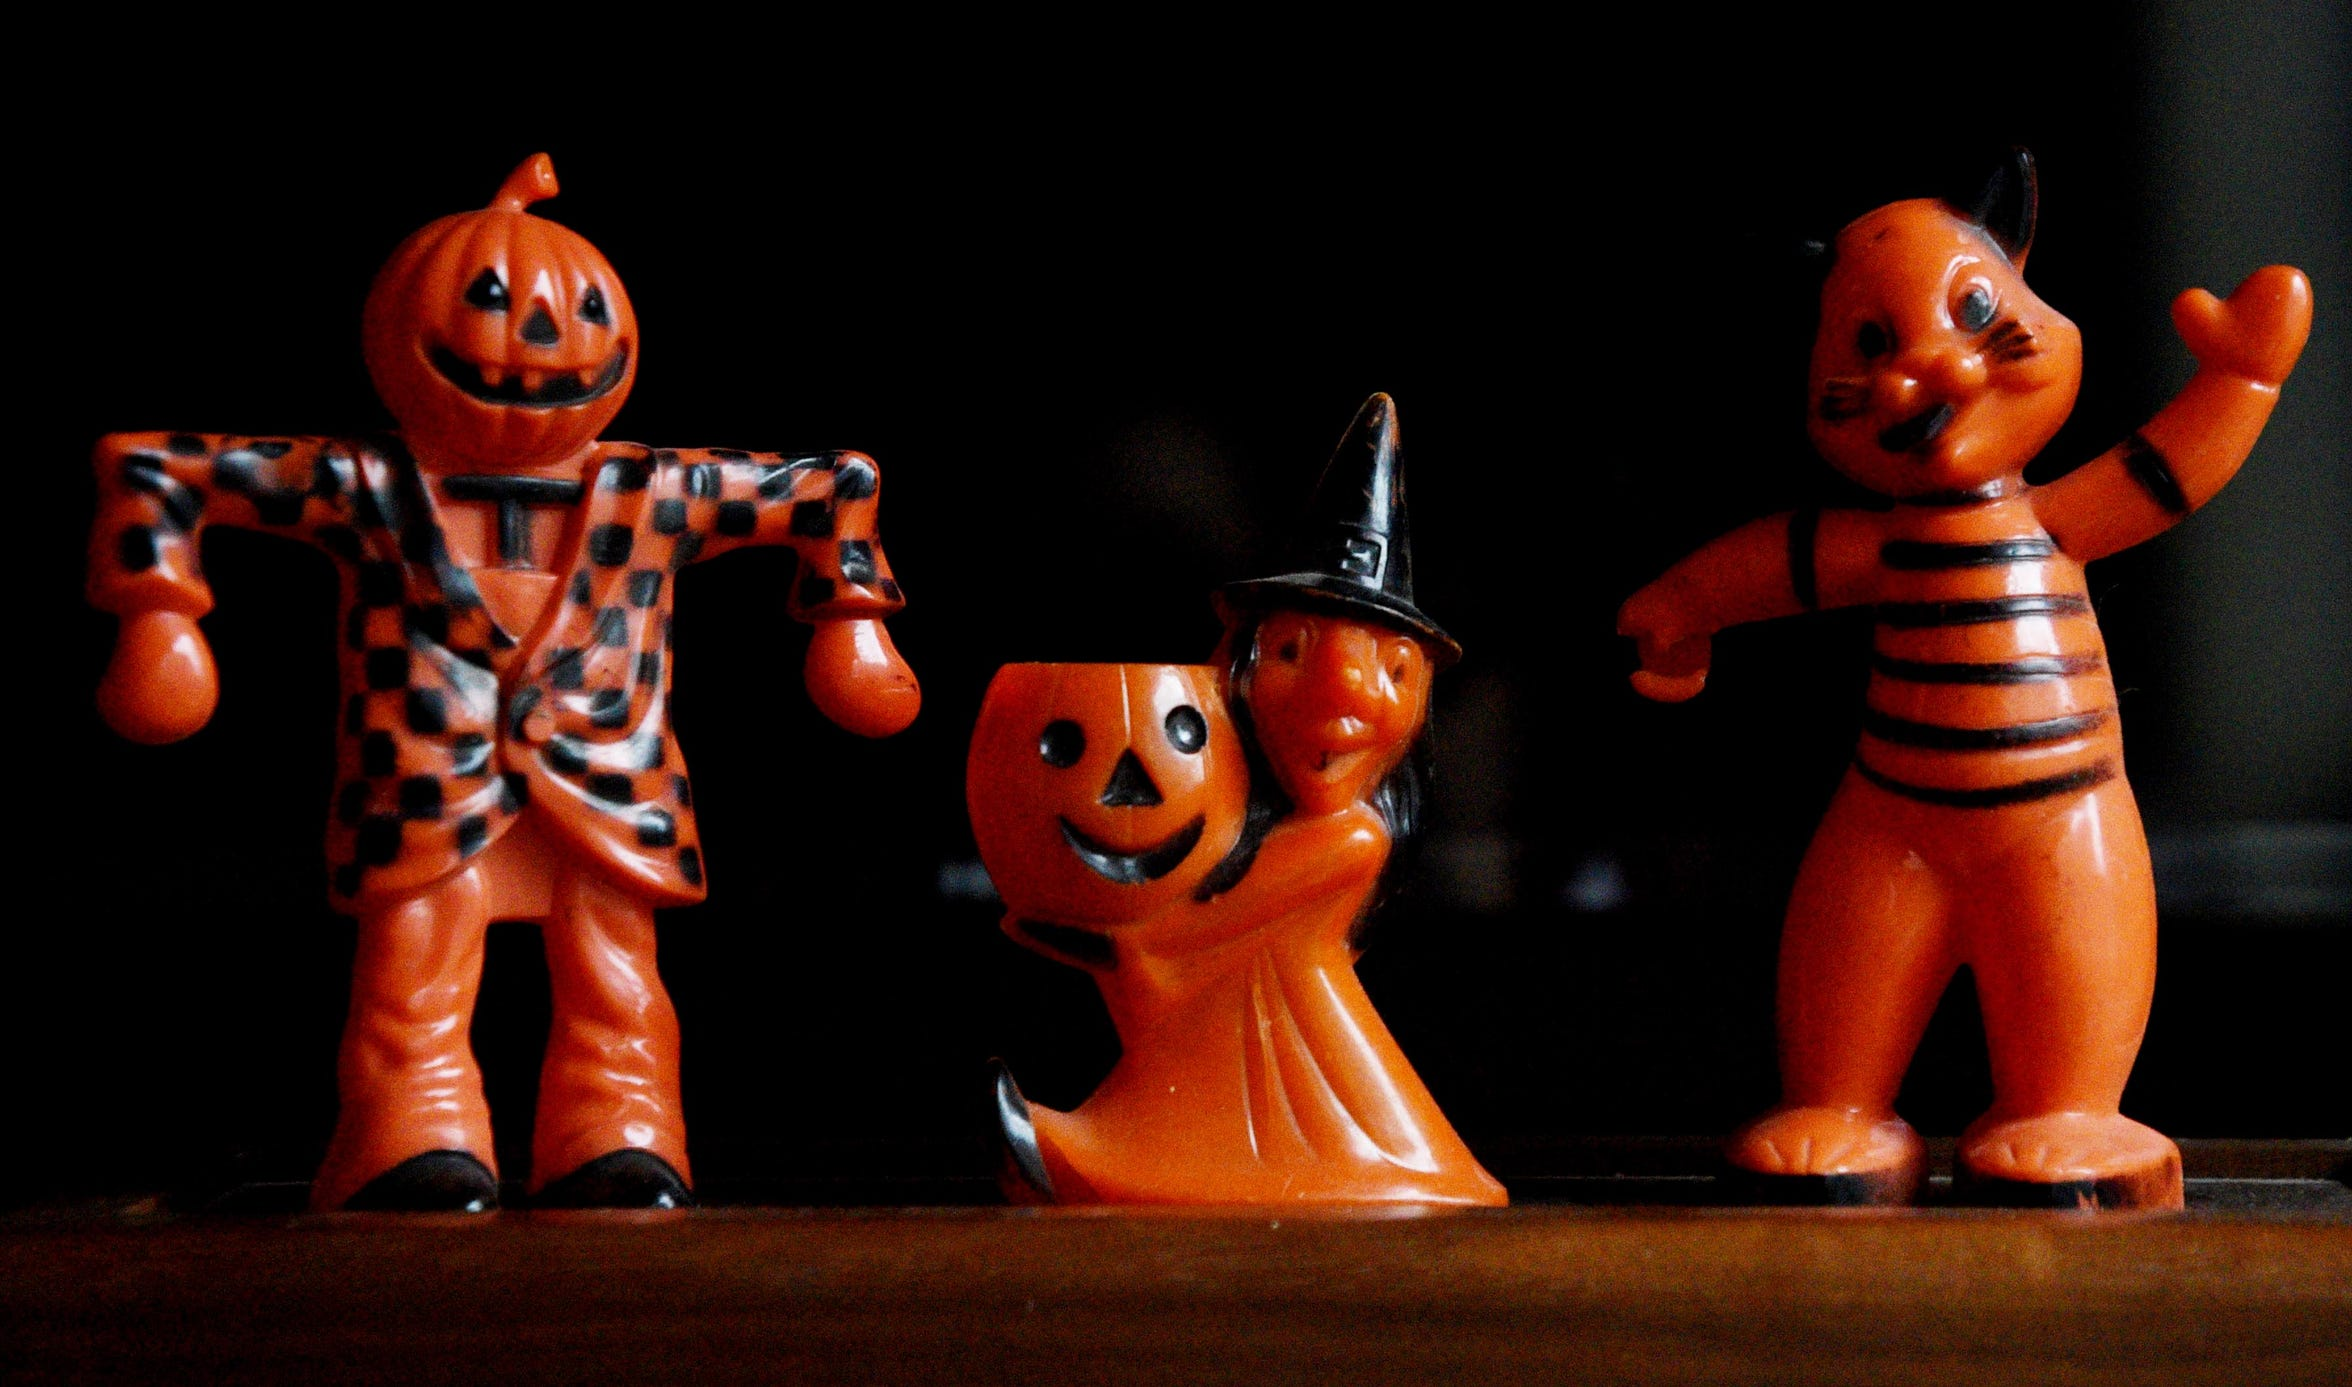 Vintage plastic Halloween candy holders from Deborah Hughes collection.